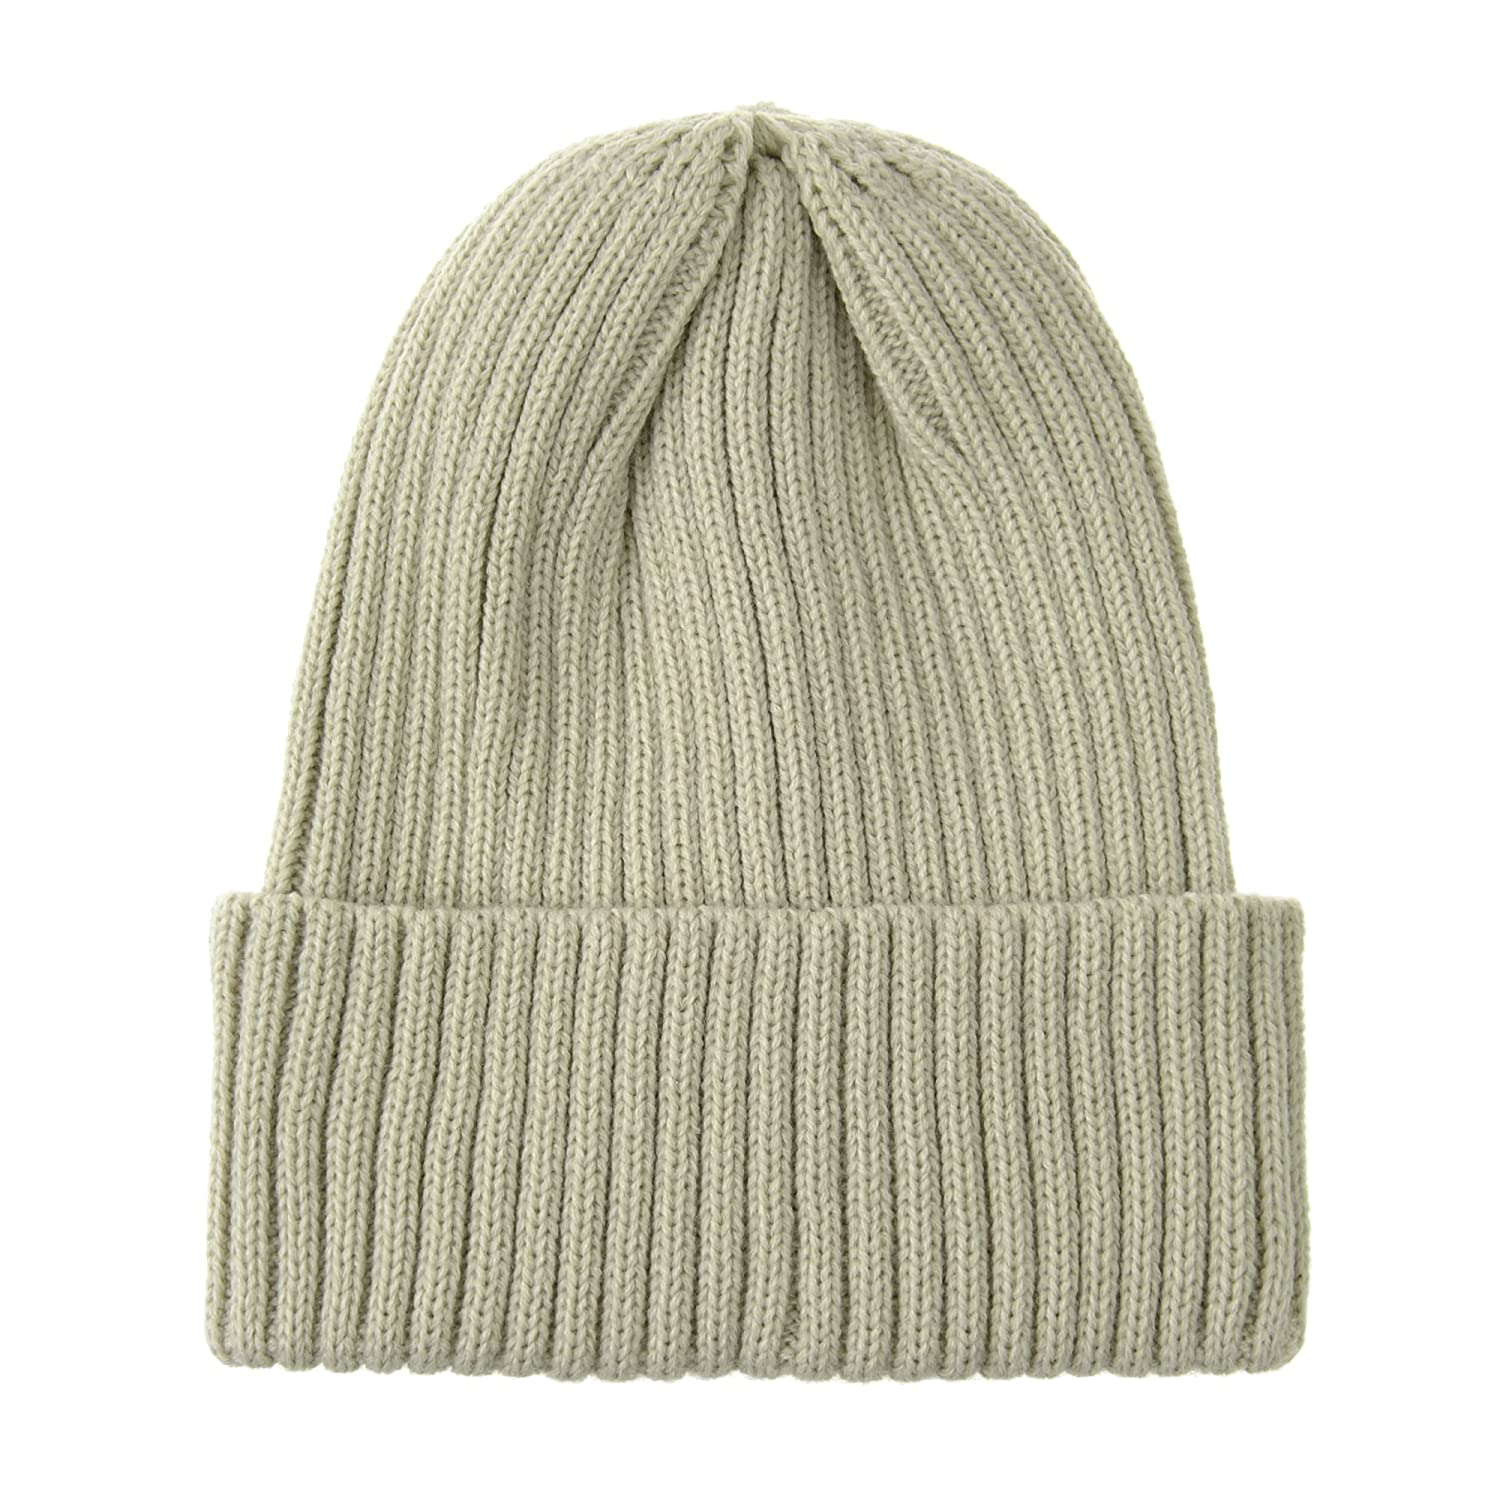 511c51ef696 WITHMOONS Knitted Ribbed Beanie Hat Basic Plain Solid Watch Cap AC5846  (Beige) at Amazon Men s Clothing store